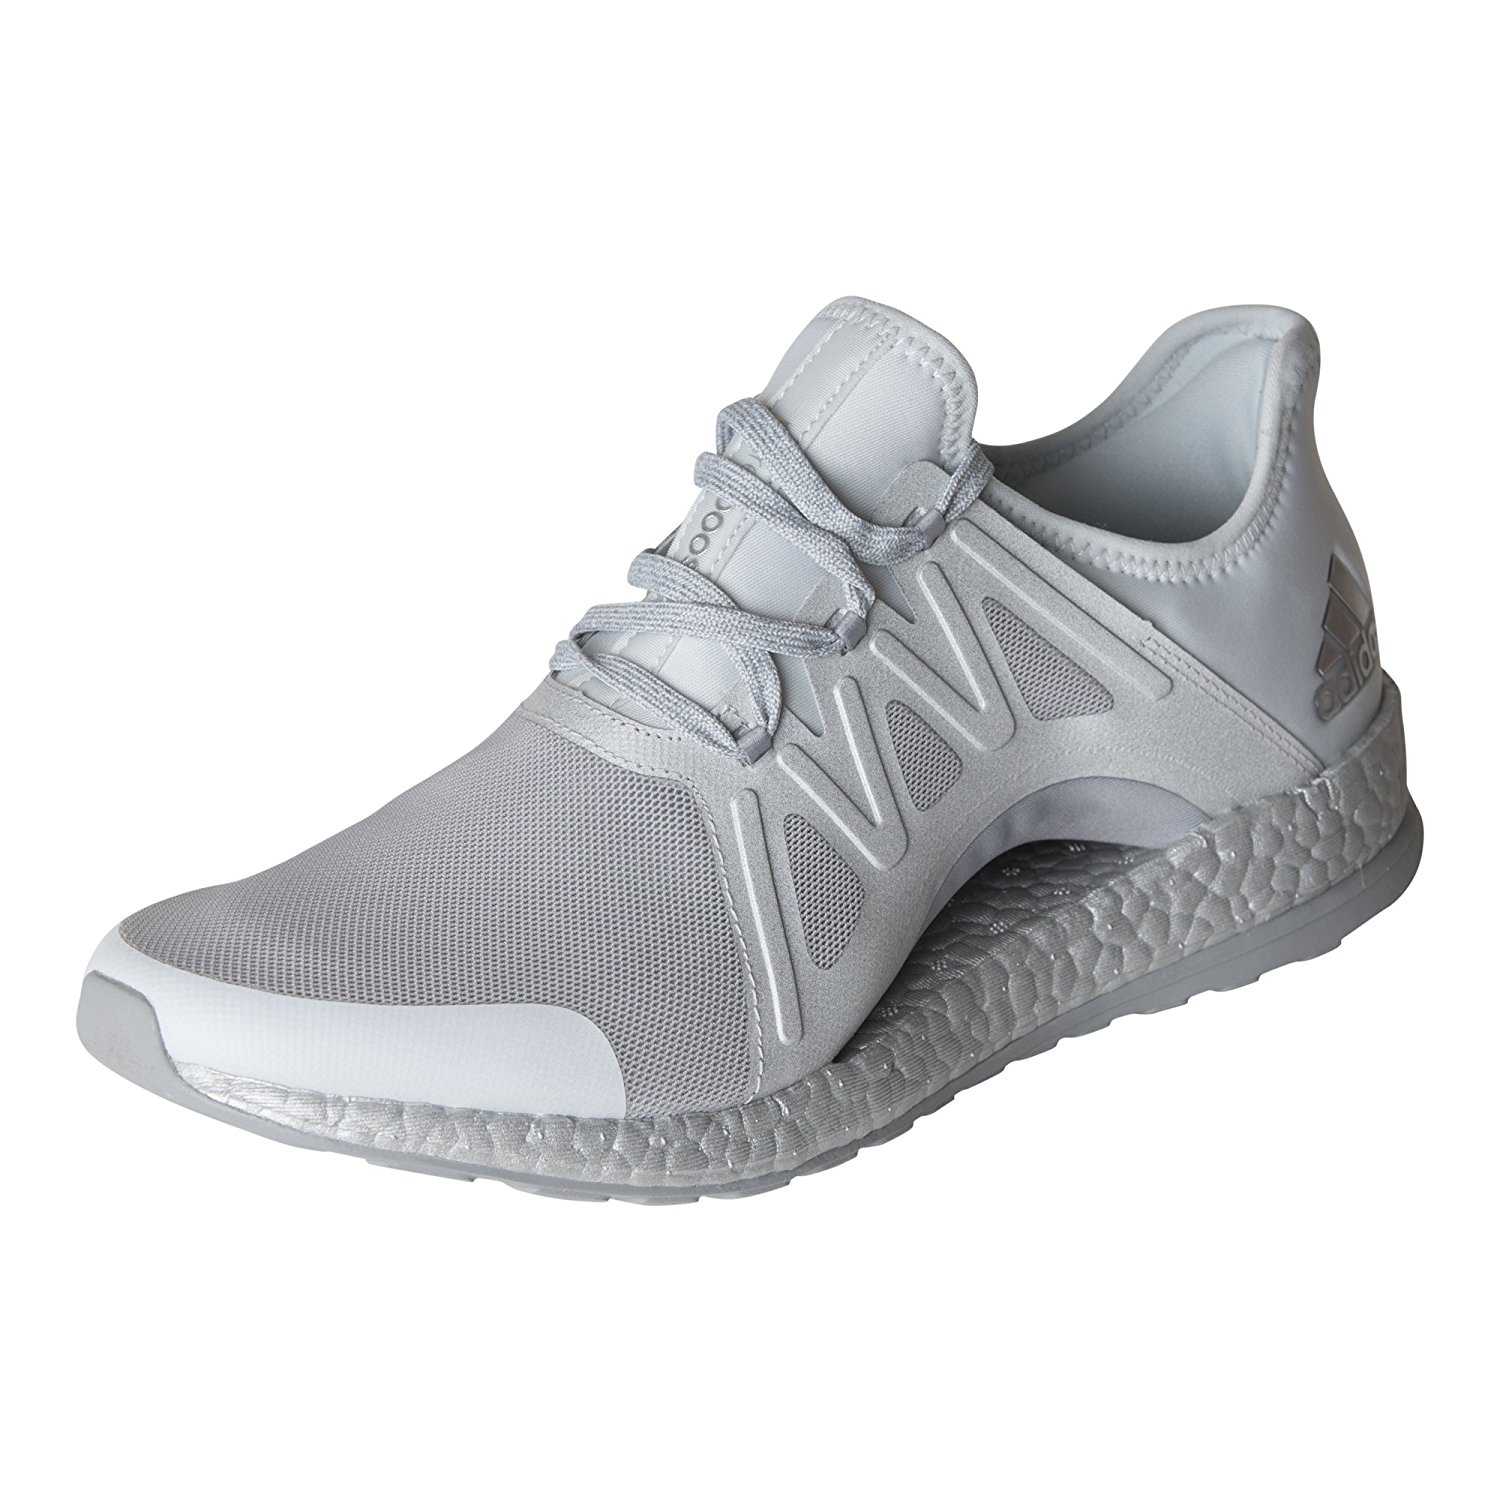 d84c69baa2ab7 Details about adidas Womens PureBOOST Xpose Running Shoe Clear Grey White Mid  Grey S82066